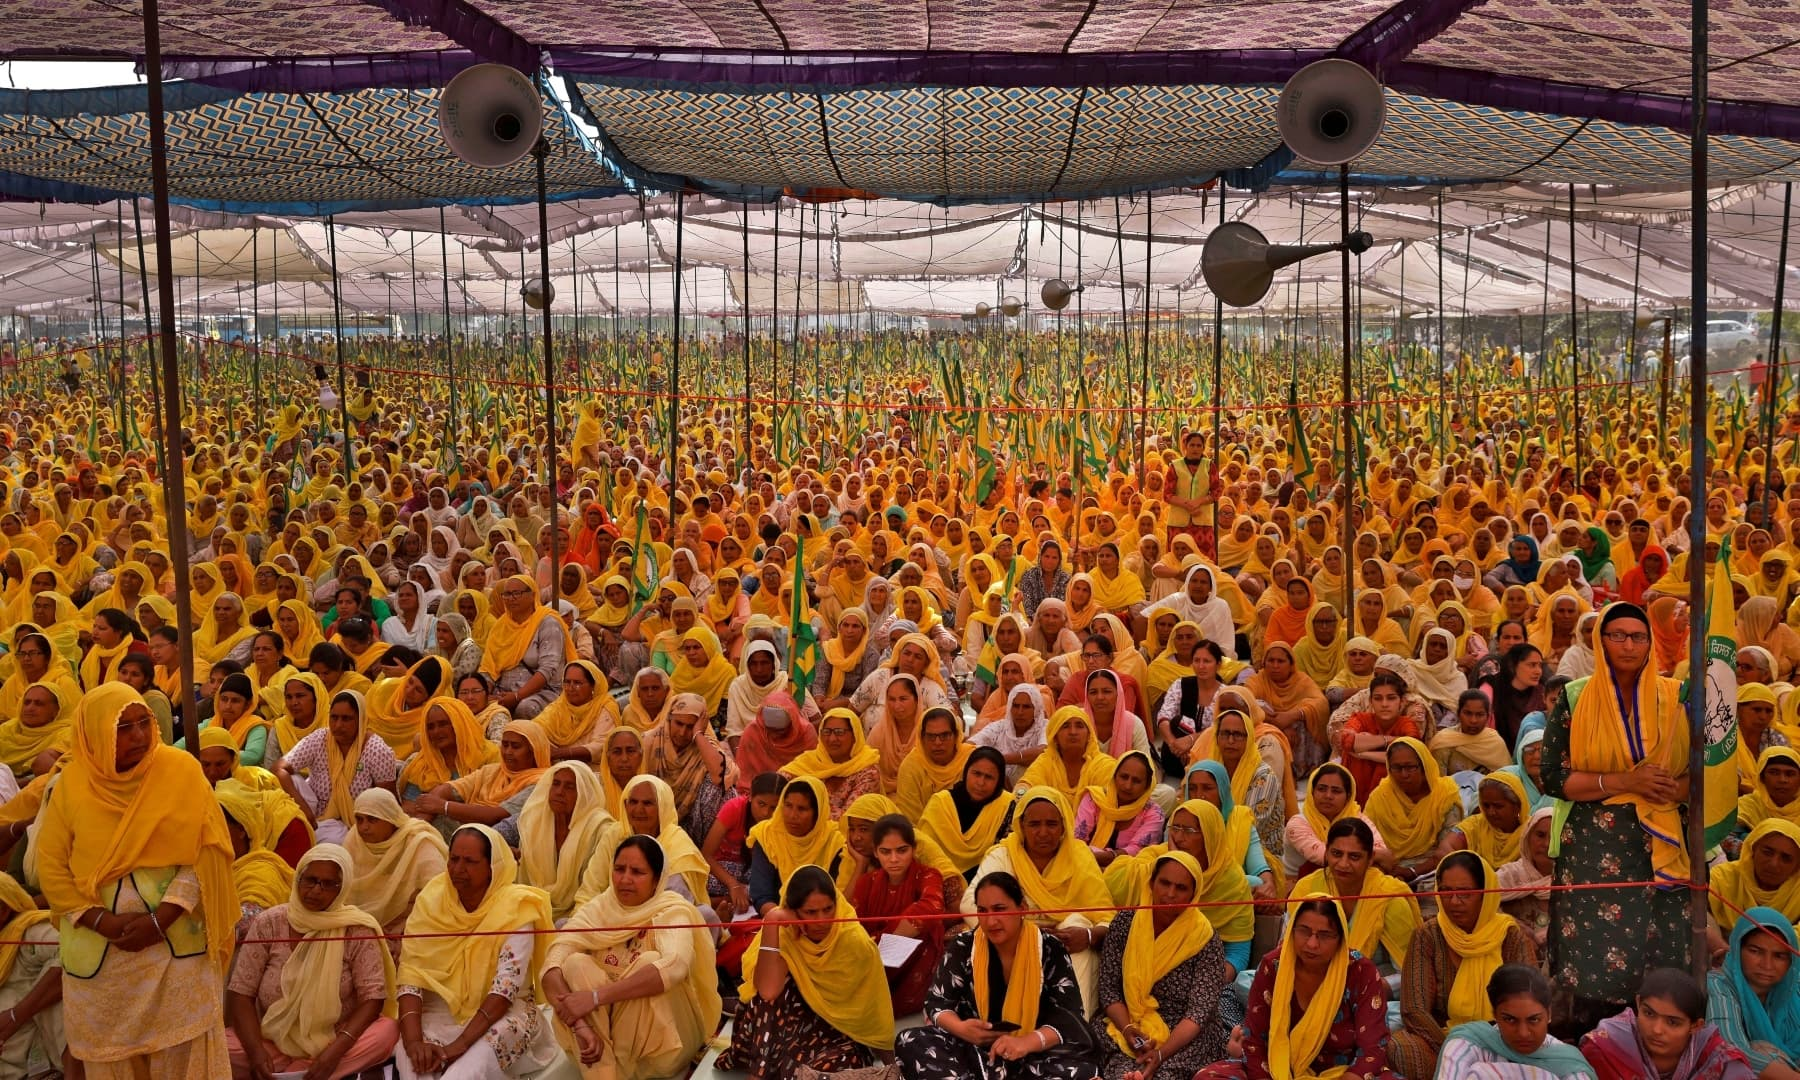 Women farmers attend a protest against farm laws on the occasion of International Women's Day at Bahadurgar near Haryana-Delhi border, India, March 8. — Reuters